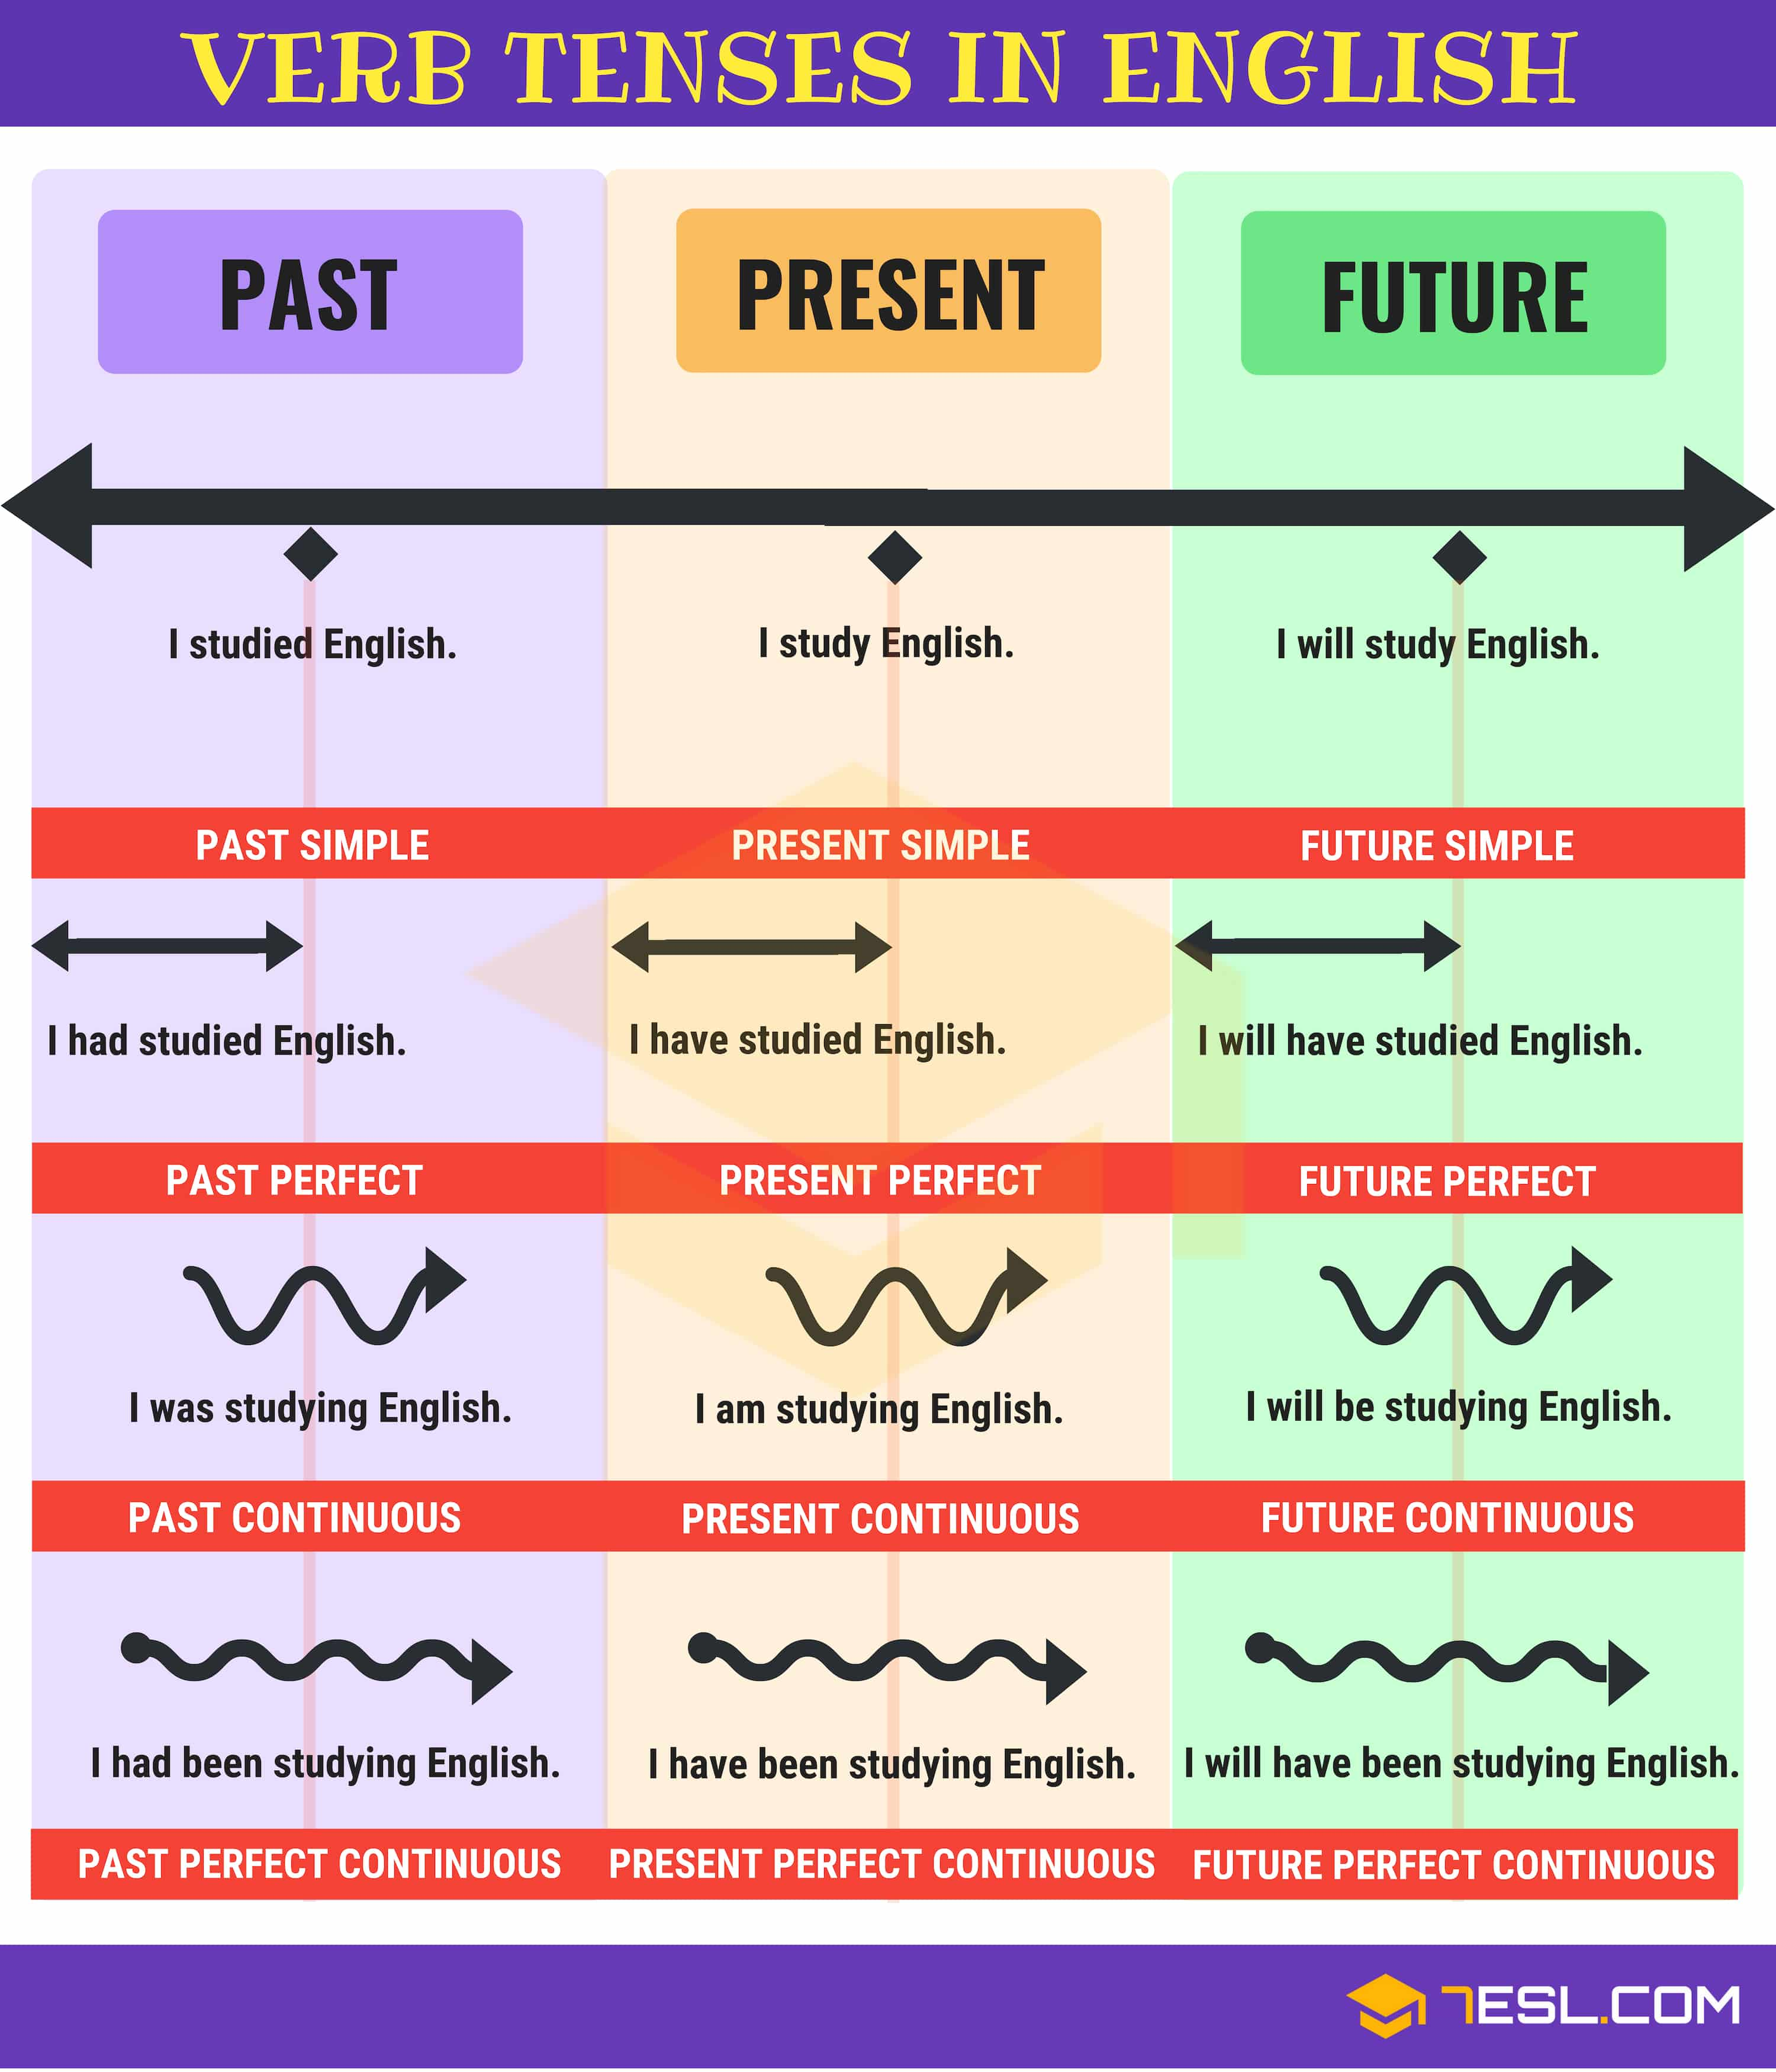 Verb Tenses Chart - All Tenses in a Table